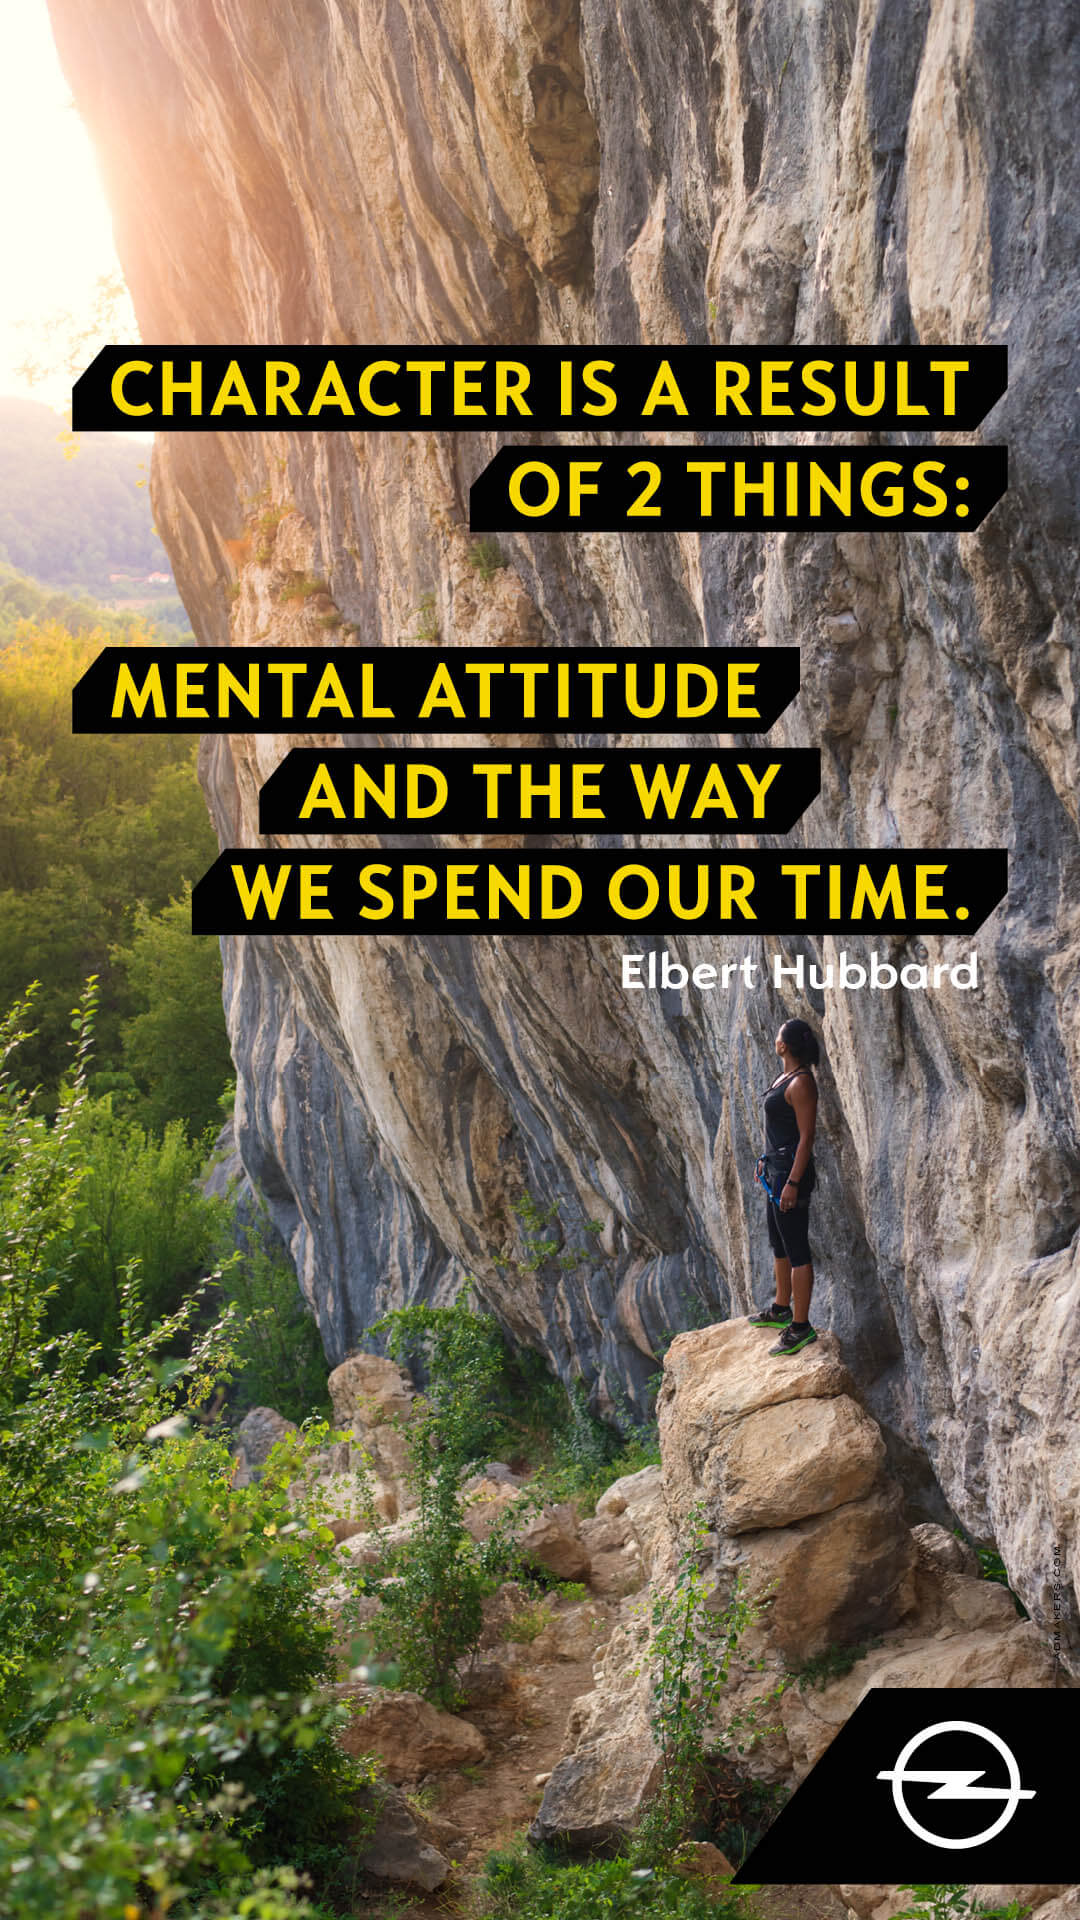 Character is a result of 2 things: Mental attitude and the way we spend our time